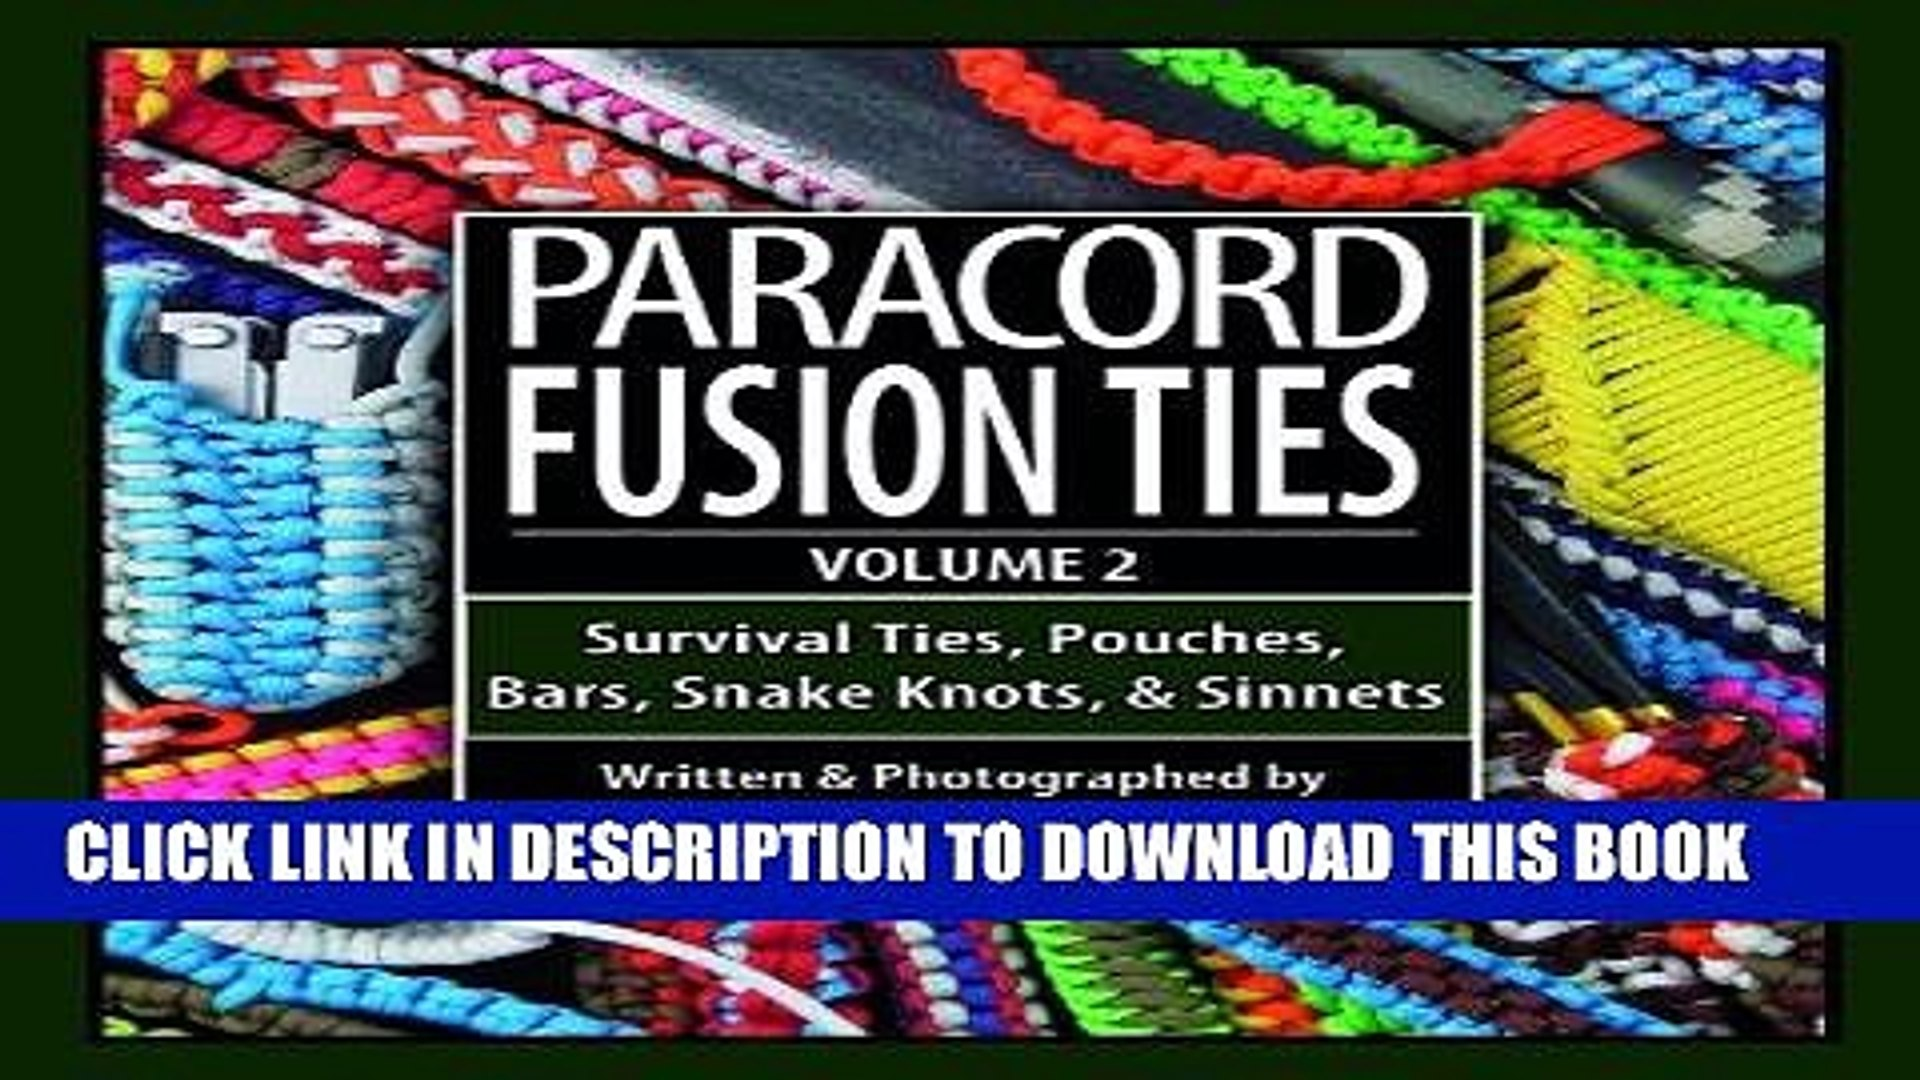 Ebook Paracord Fusion Ties - Volume 2: Survival Ties, Pouches, Bars, Snake Knots, and Sinnets Free